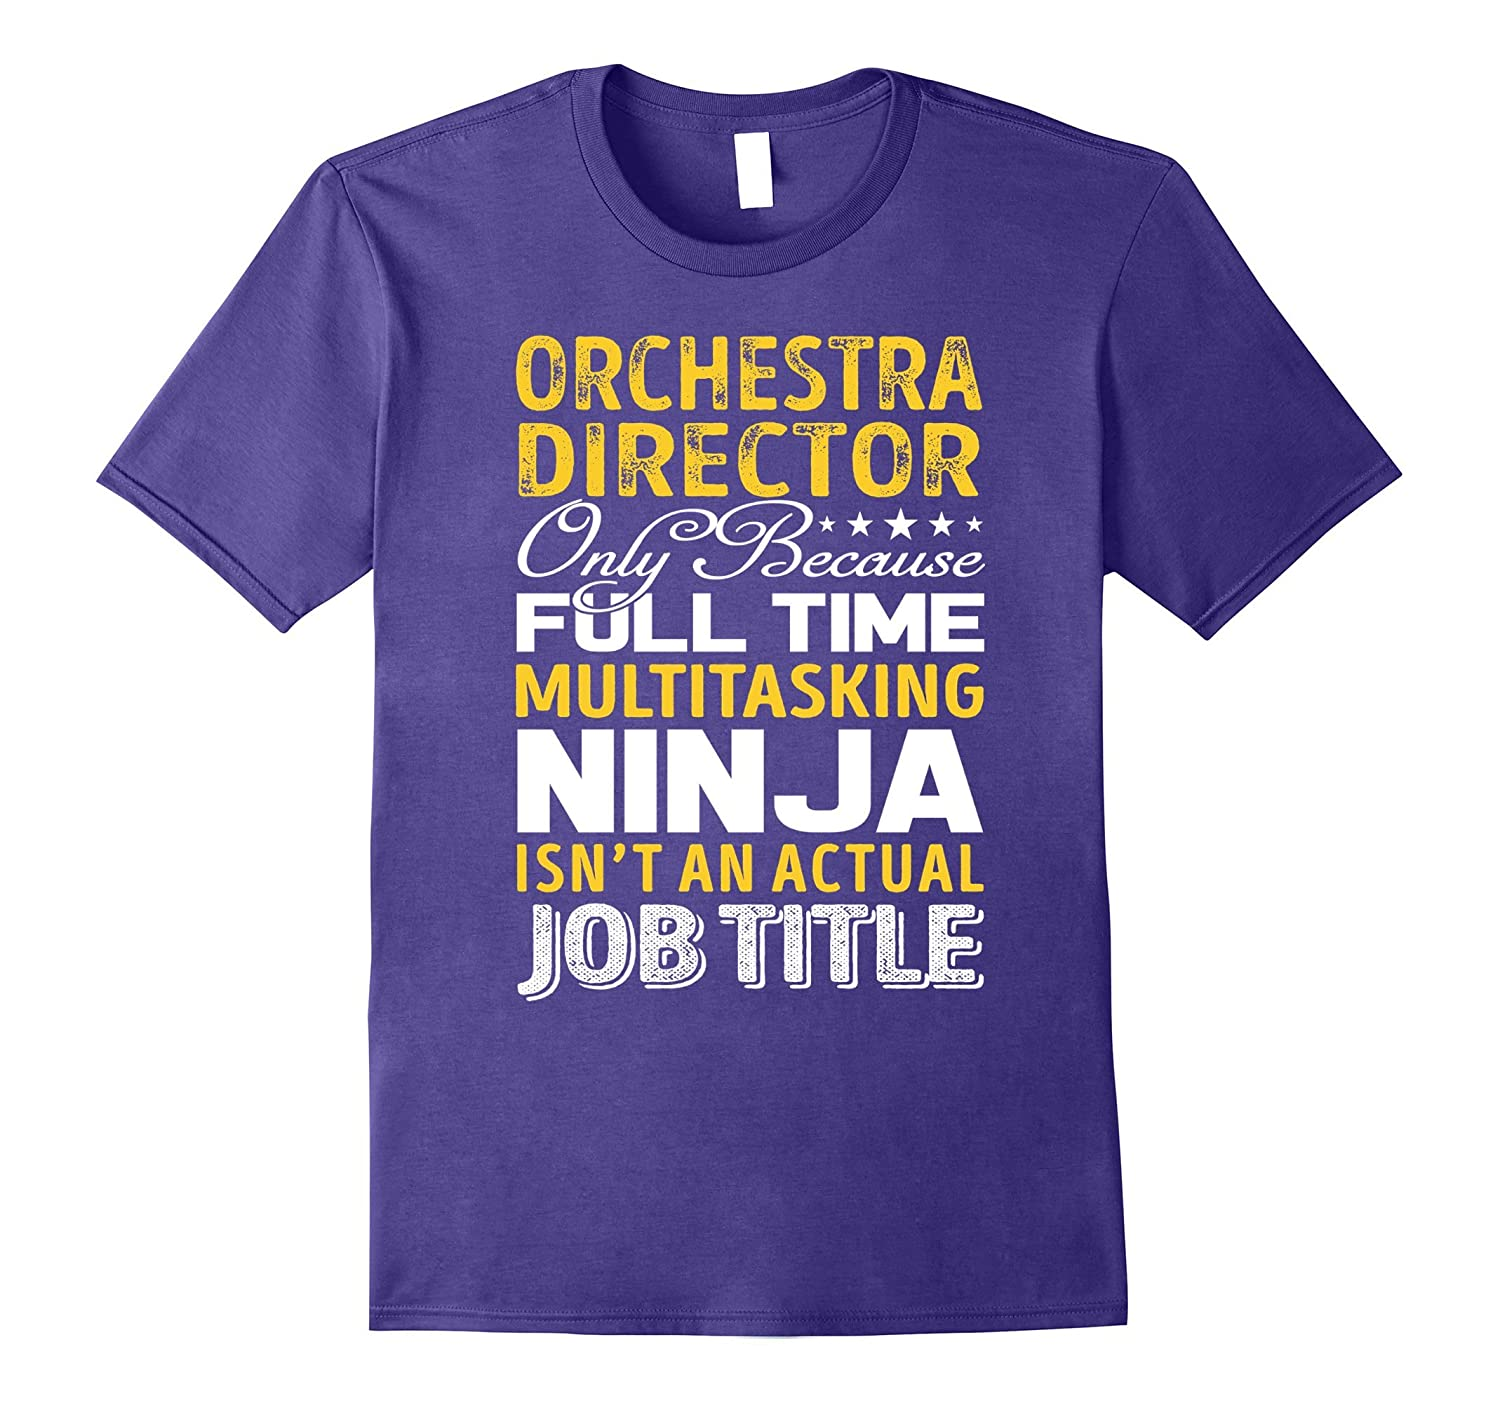 Orchestra Director Is Not An Actual Job Title TShirt-TJ